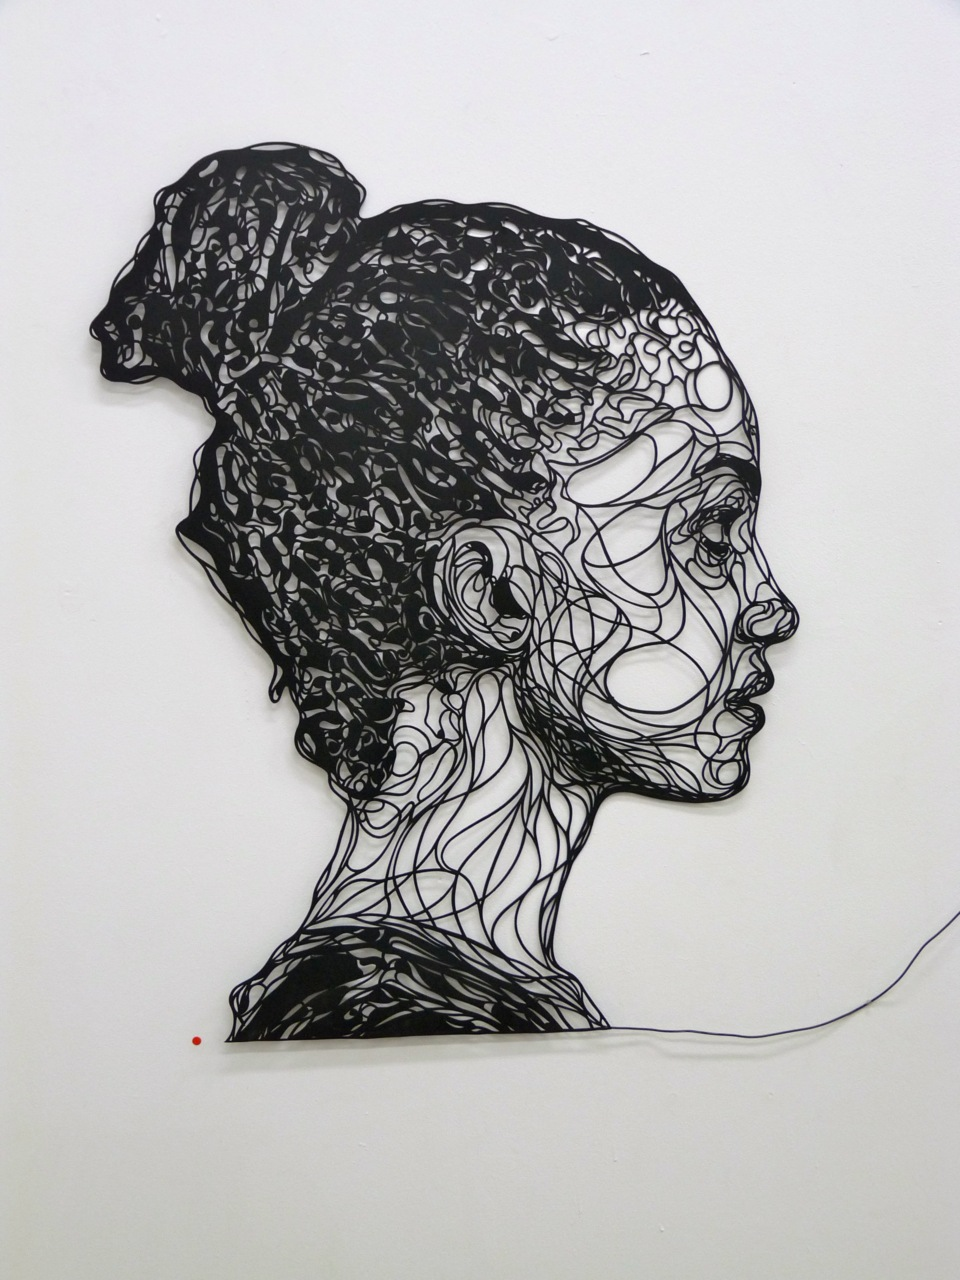 kristrappeniers: One of my papercuts in a gallery in Paris